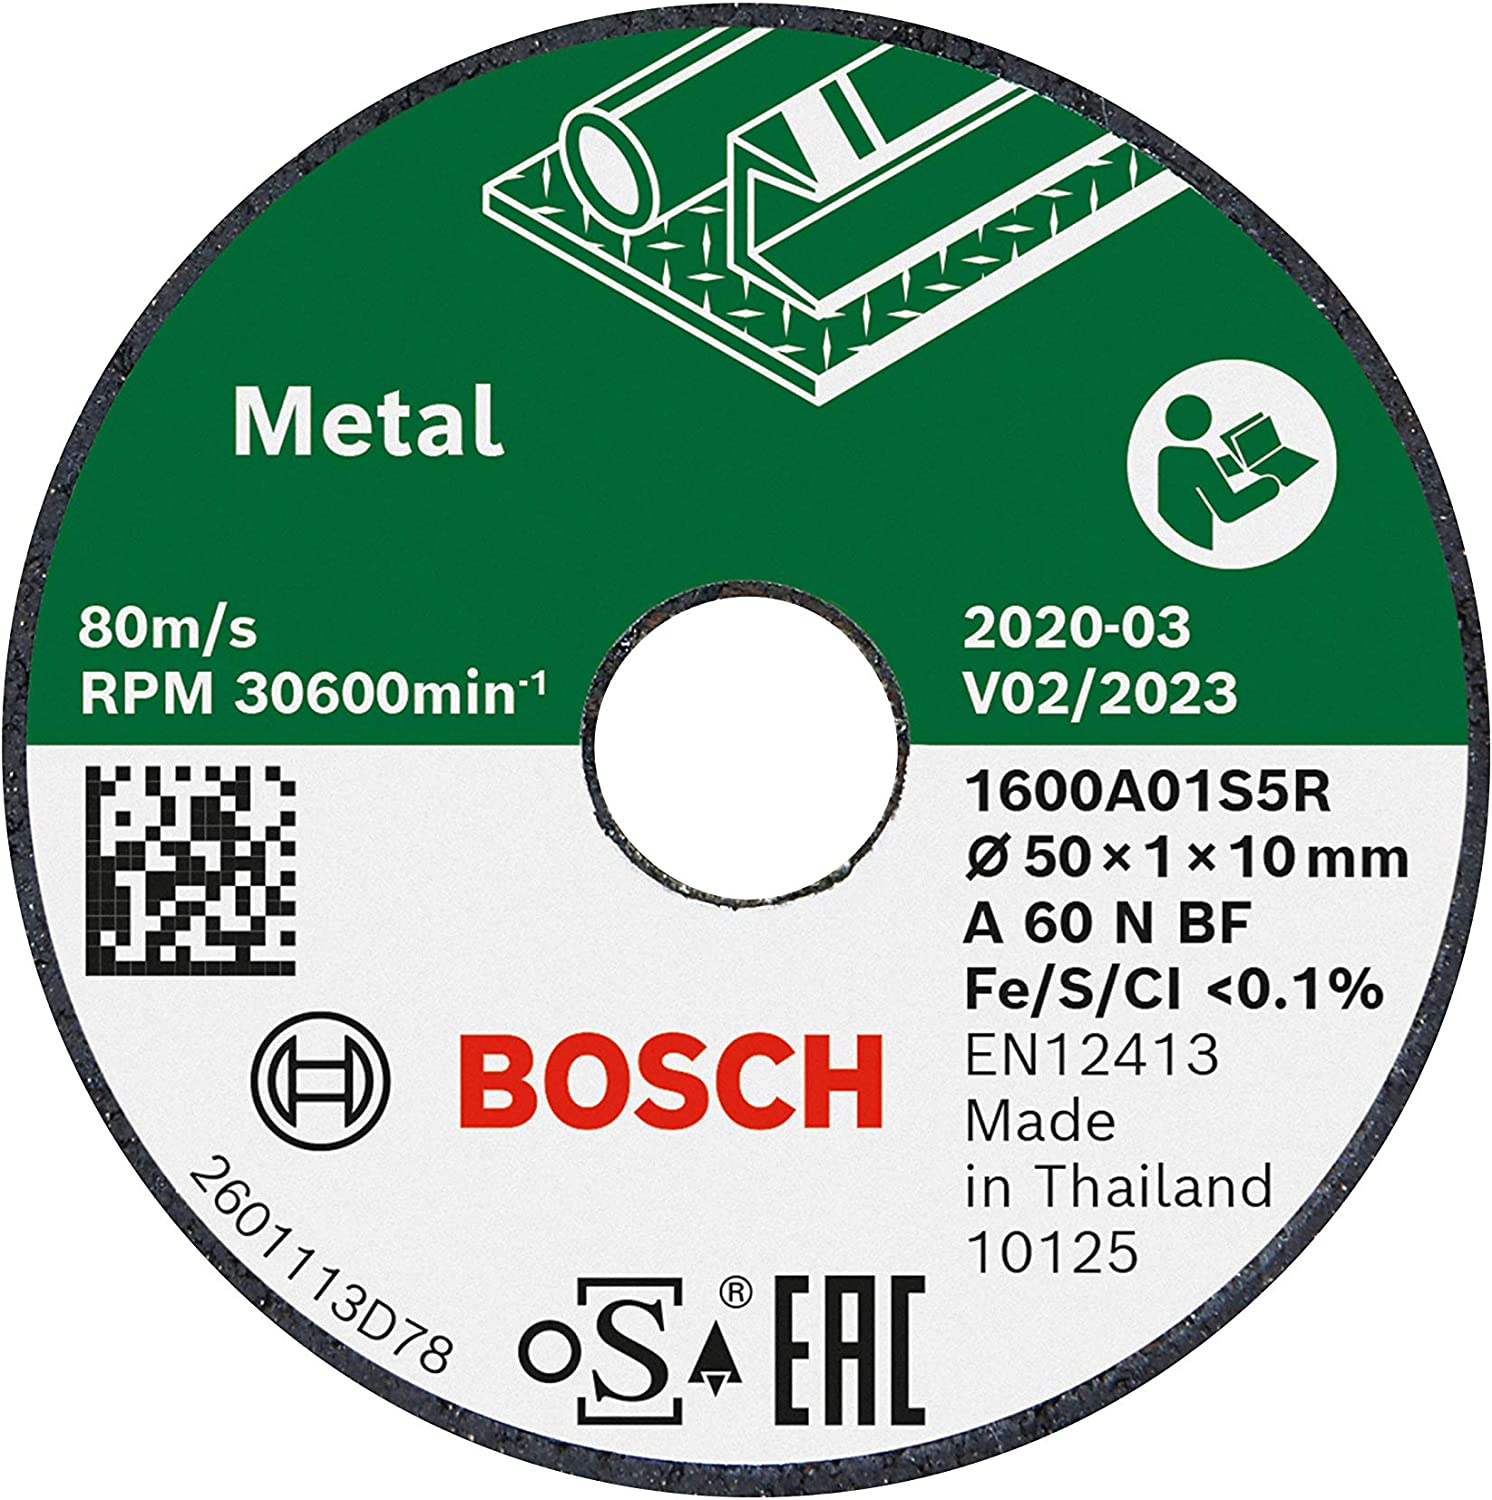 sold out Elegant Bosch Home and Garden 1600A01S5Y 3 Ø Cutting for Discs 5 Metal